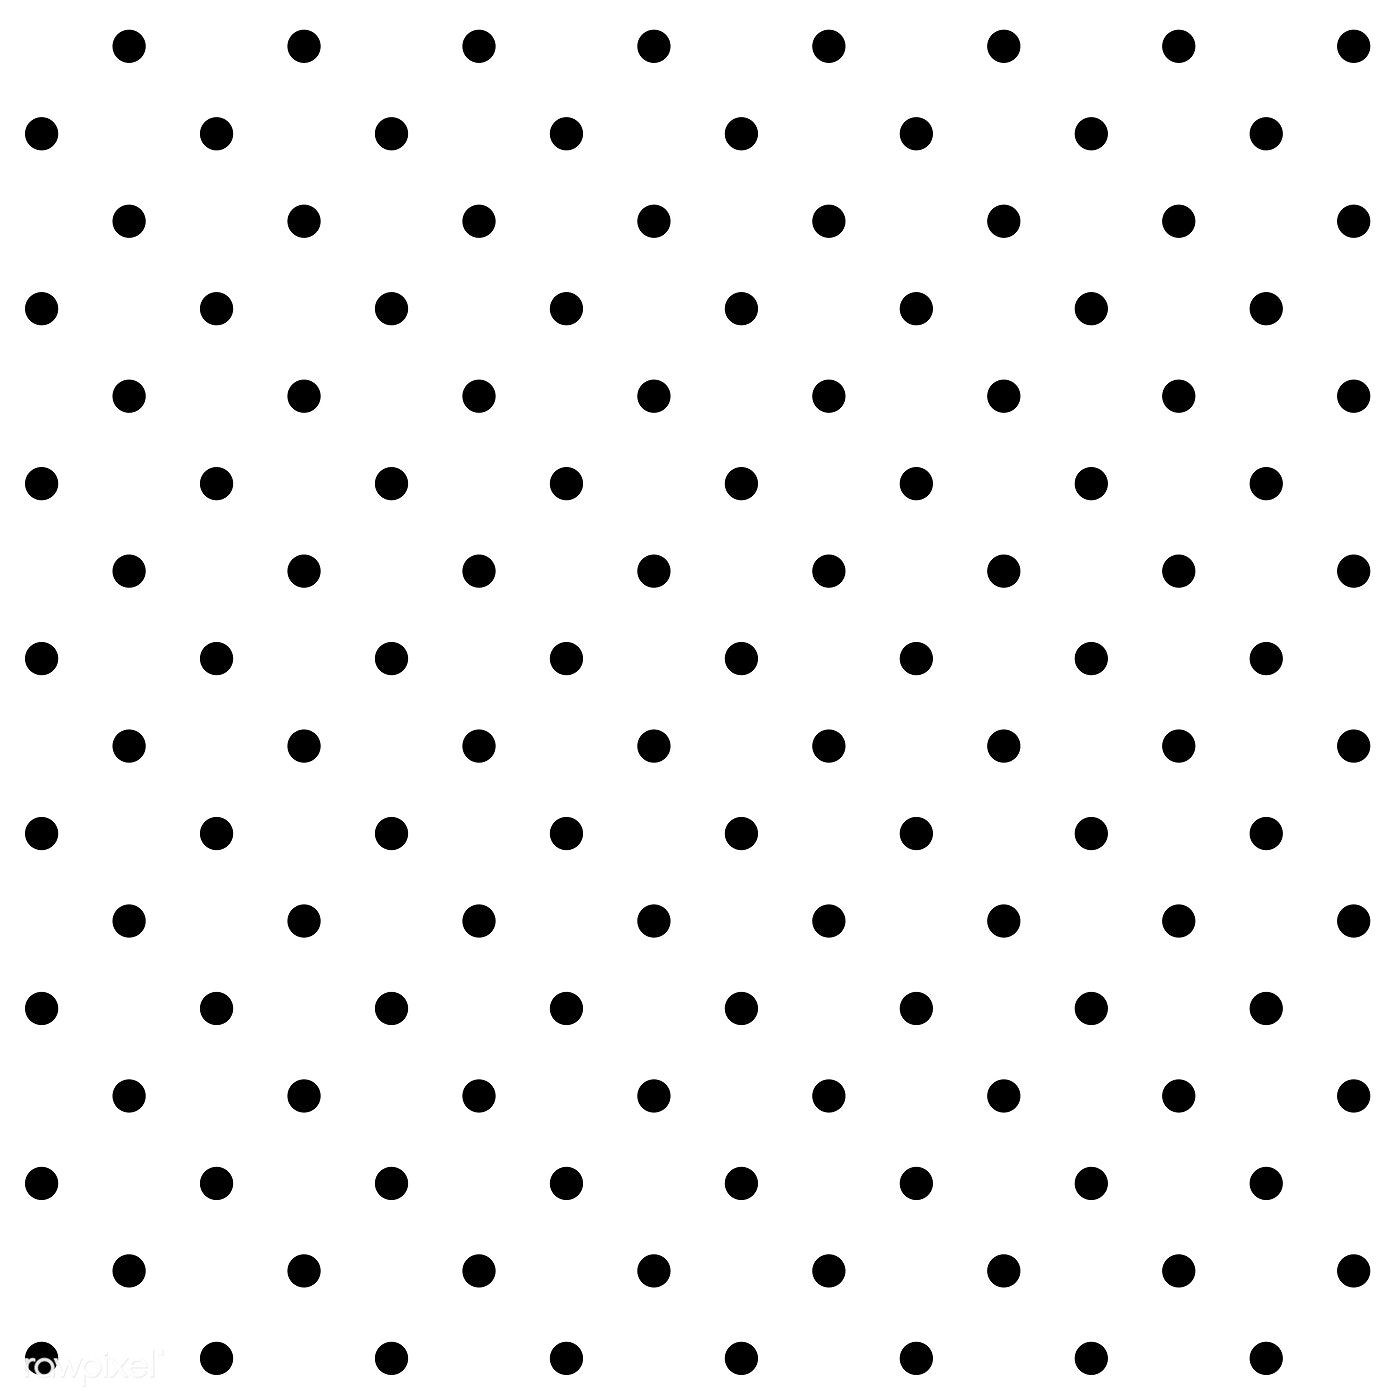 Black And White Seamless Polka Dot Pattern Vector Free Image By Rawpixel Com Filmful Dot Pattern Vector Vector Free Polka Dot Background